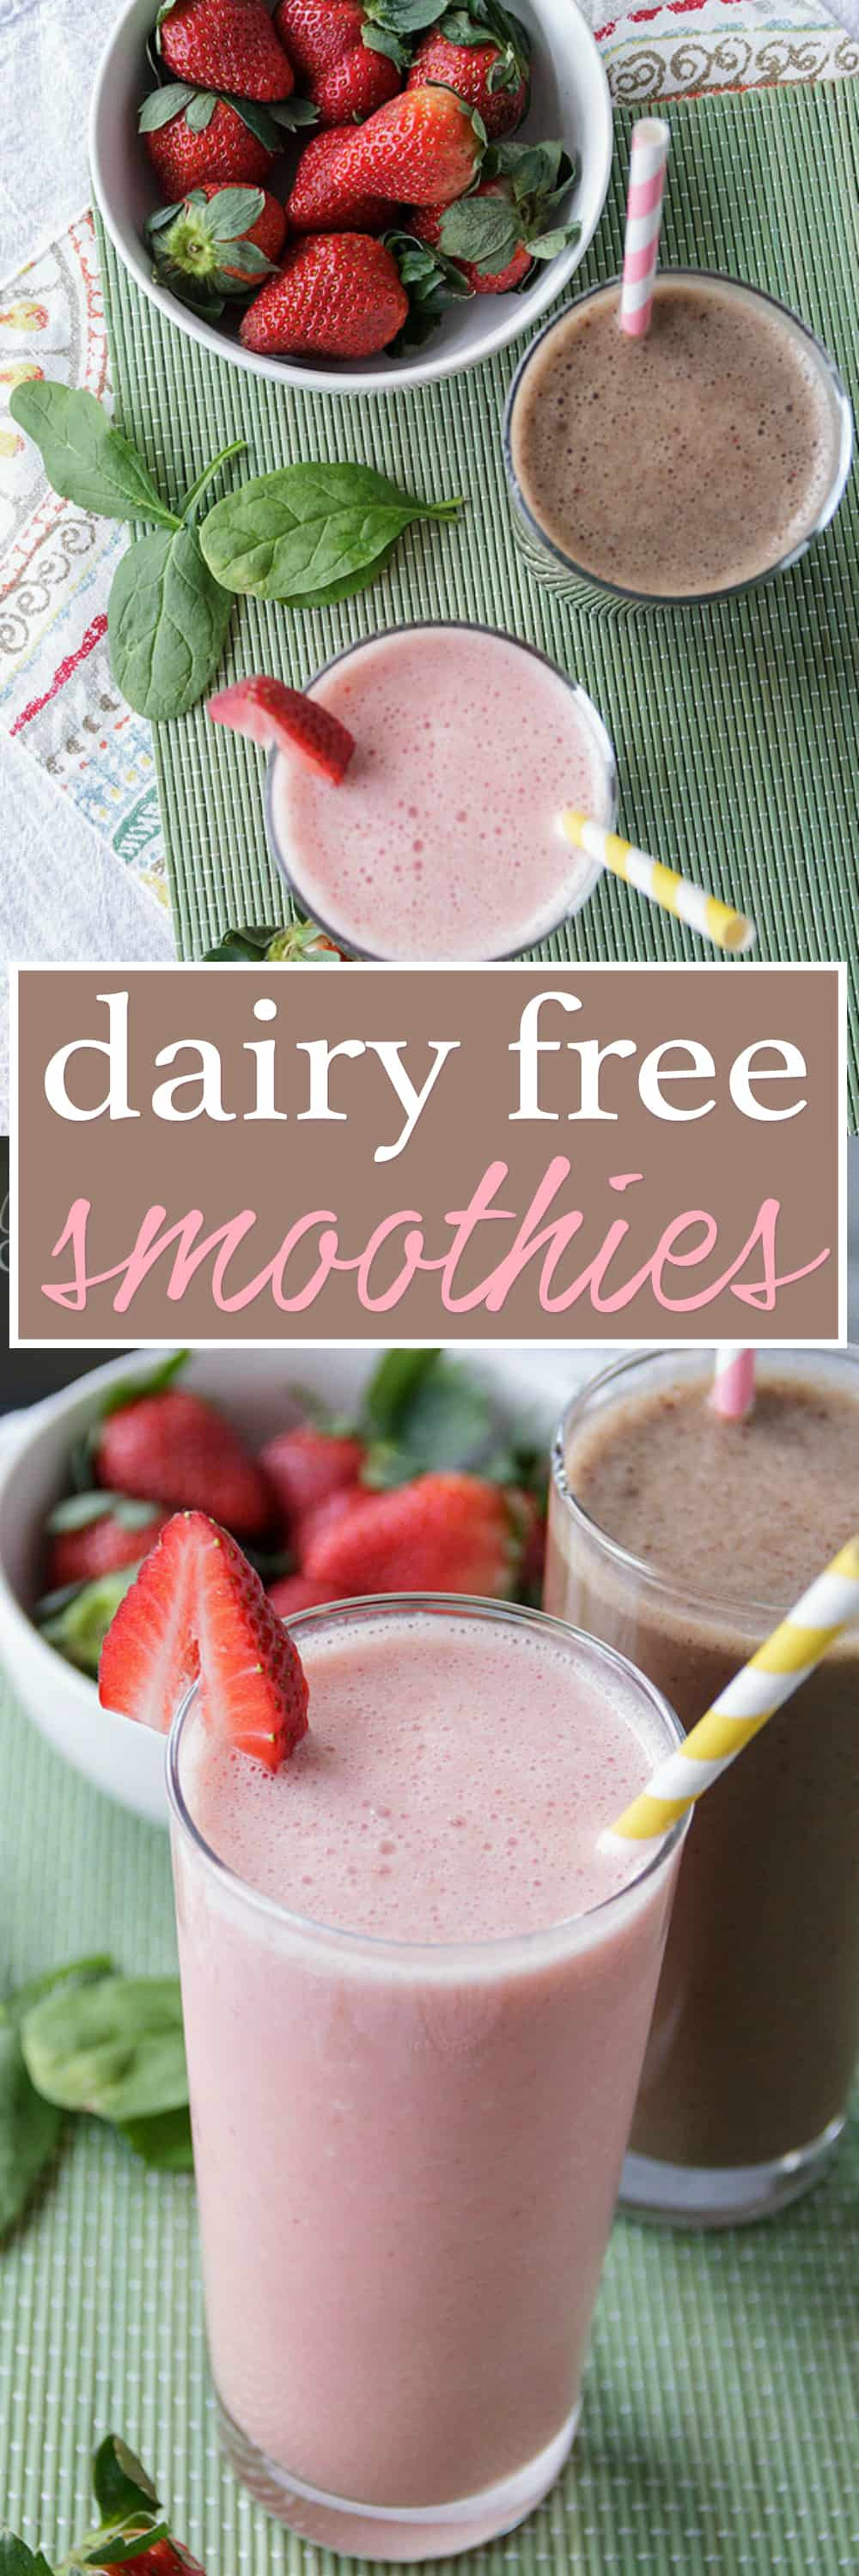 Dairy Free Smoothies  Dairy Free Smoothies vegan smoothie ideas for breakfast